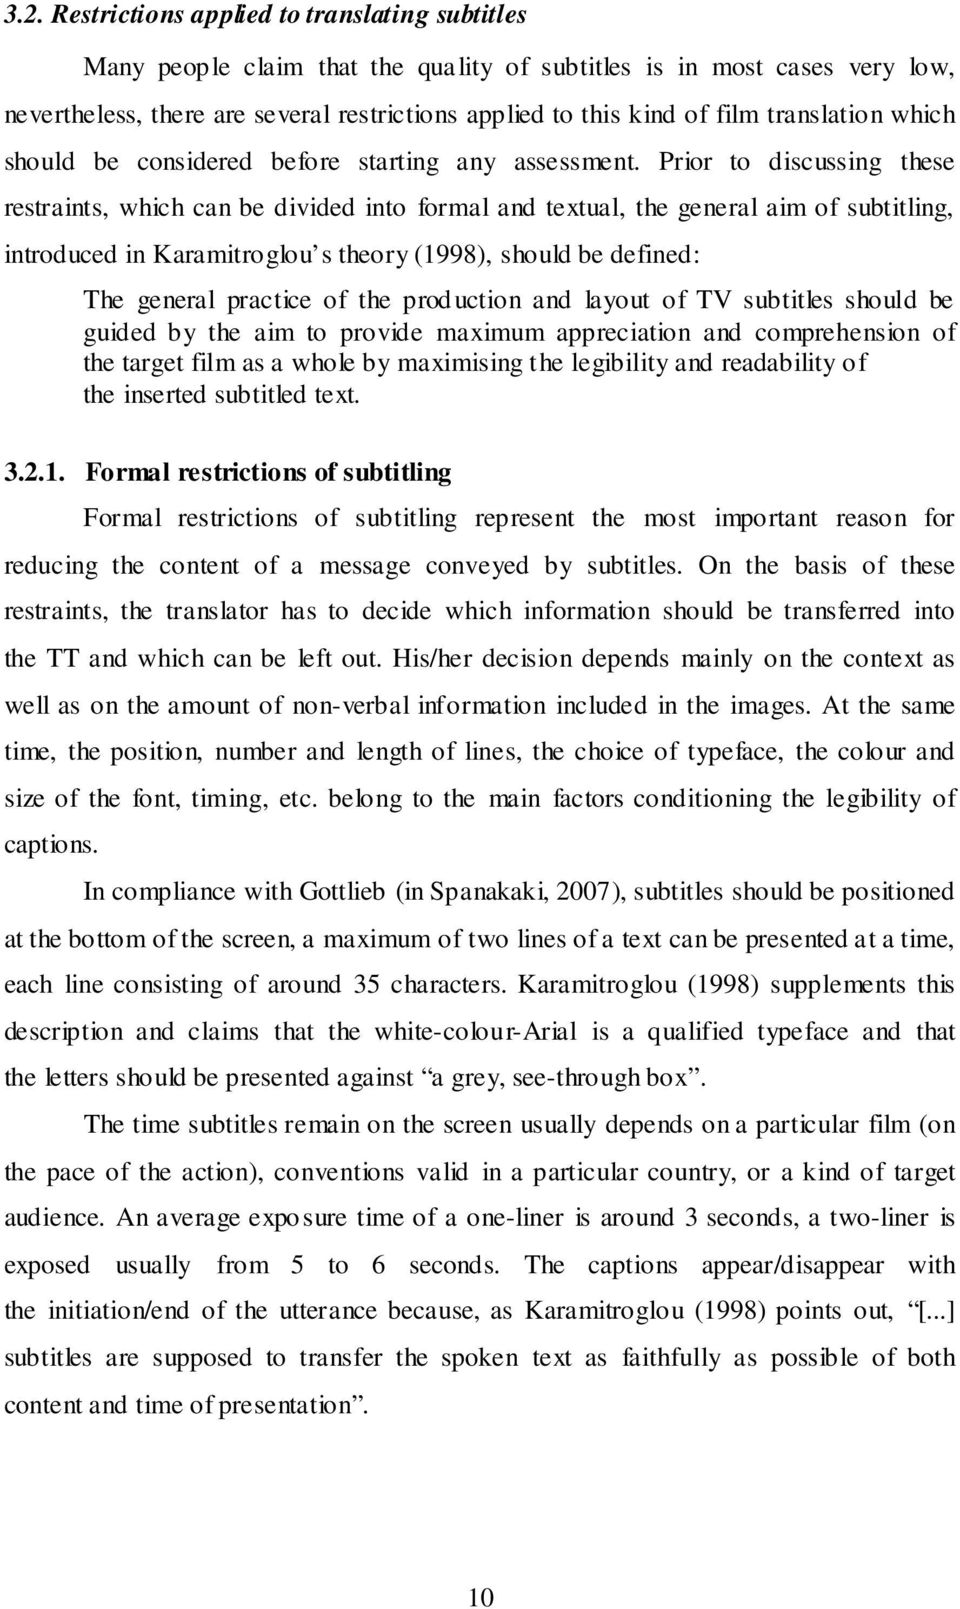 Prior to discussing these restraints, which can be divided into formal and textual, the general aim of subtitling, introduced in Karamitroglou s theory (1998), should be defined: The general practice